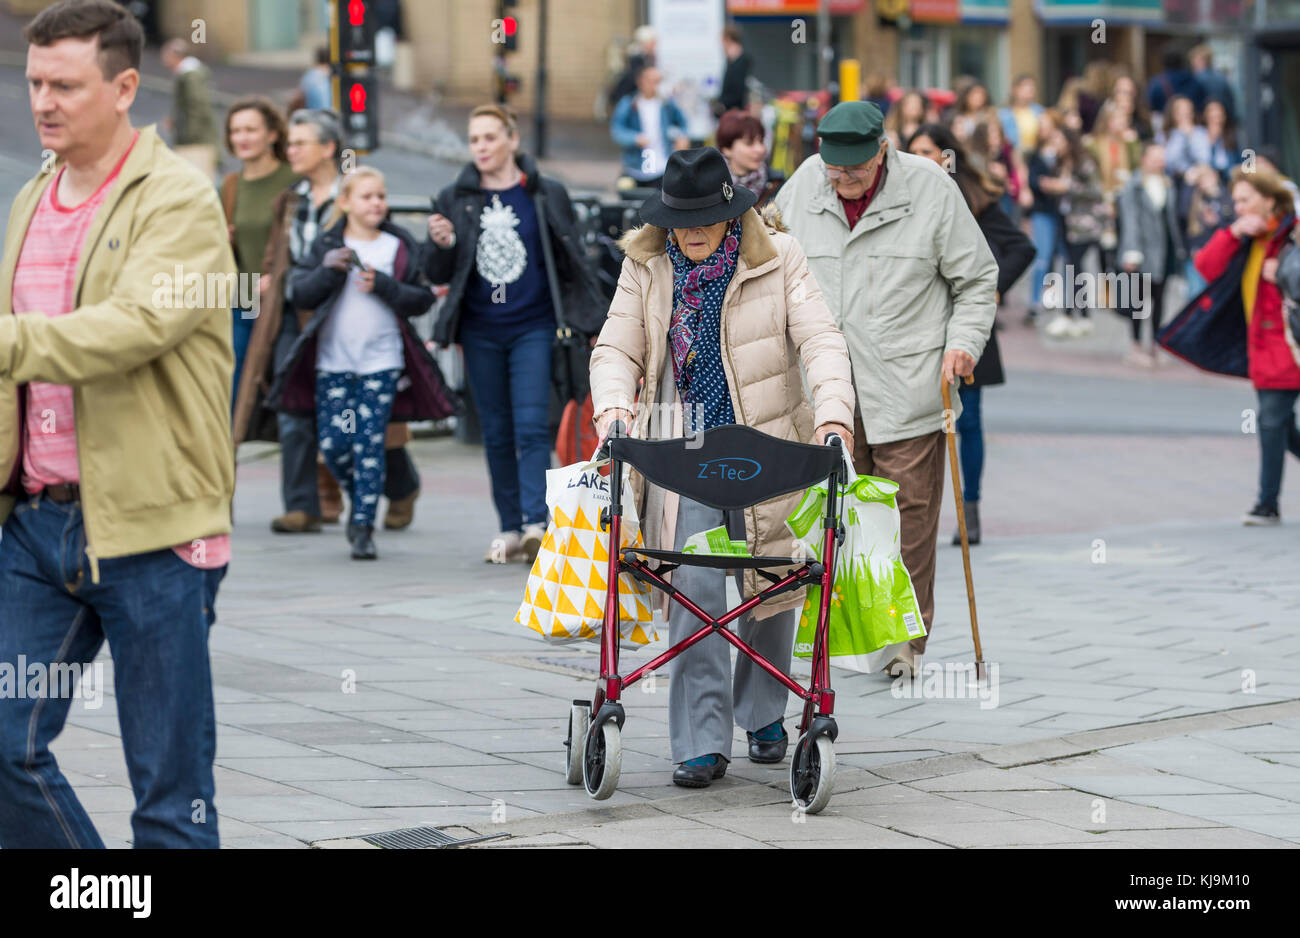 Elderly lady walking through a busy crowded city with the aid of a wheeled Zimmer frame in England, UK. Elderly - Stock Image